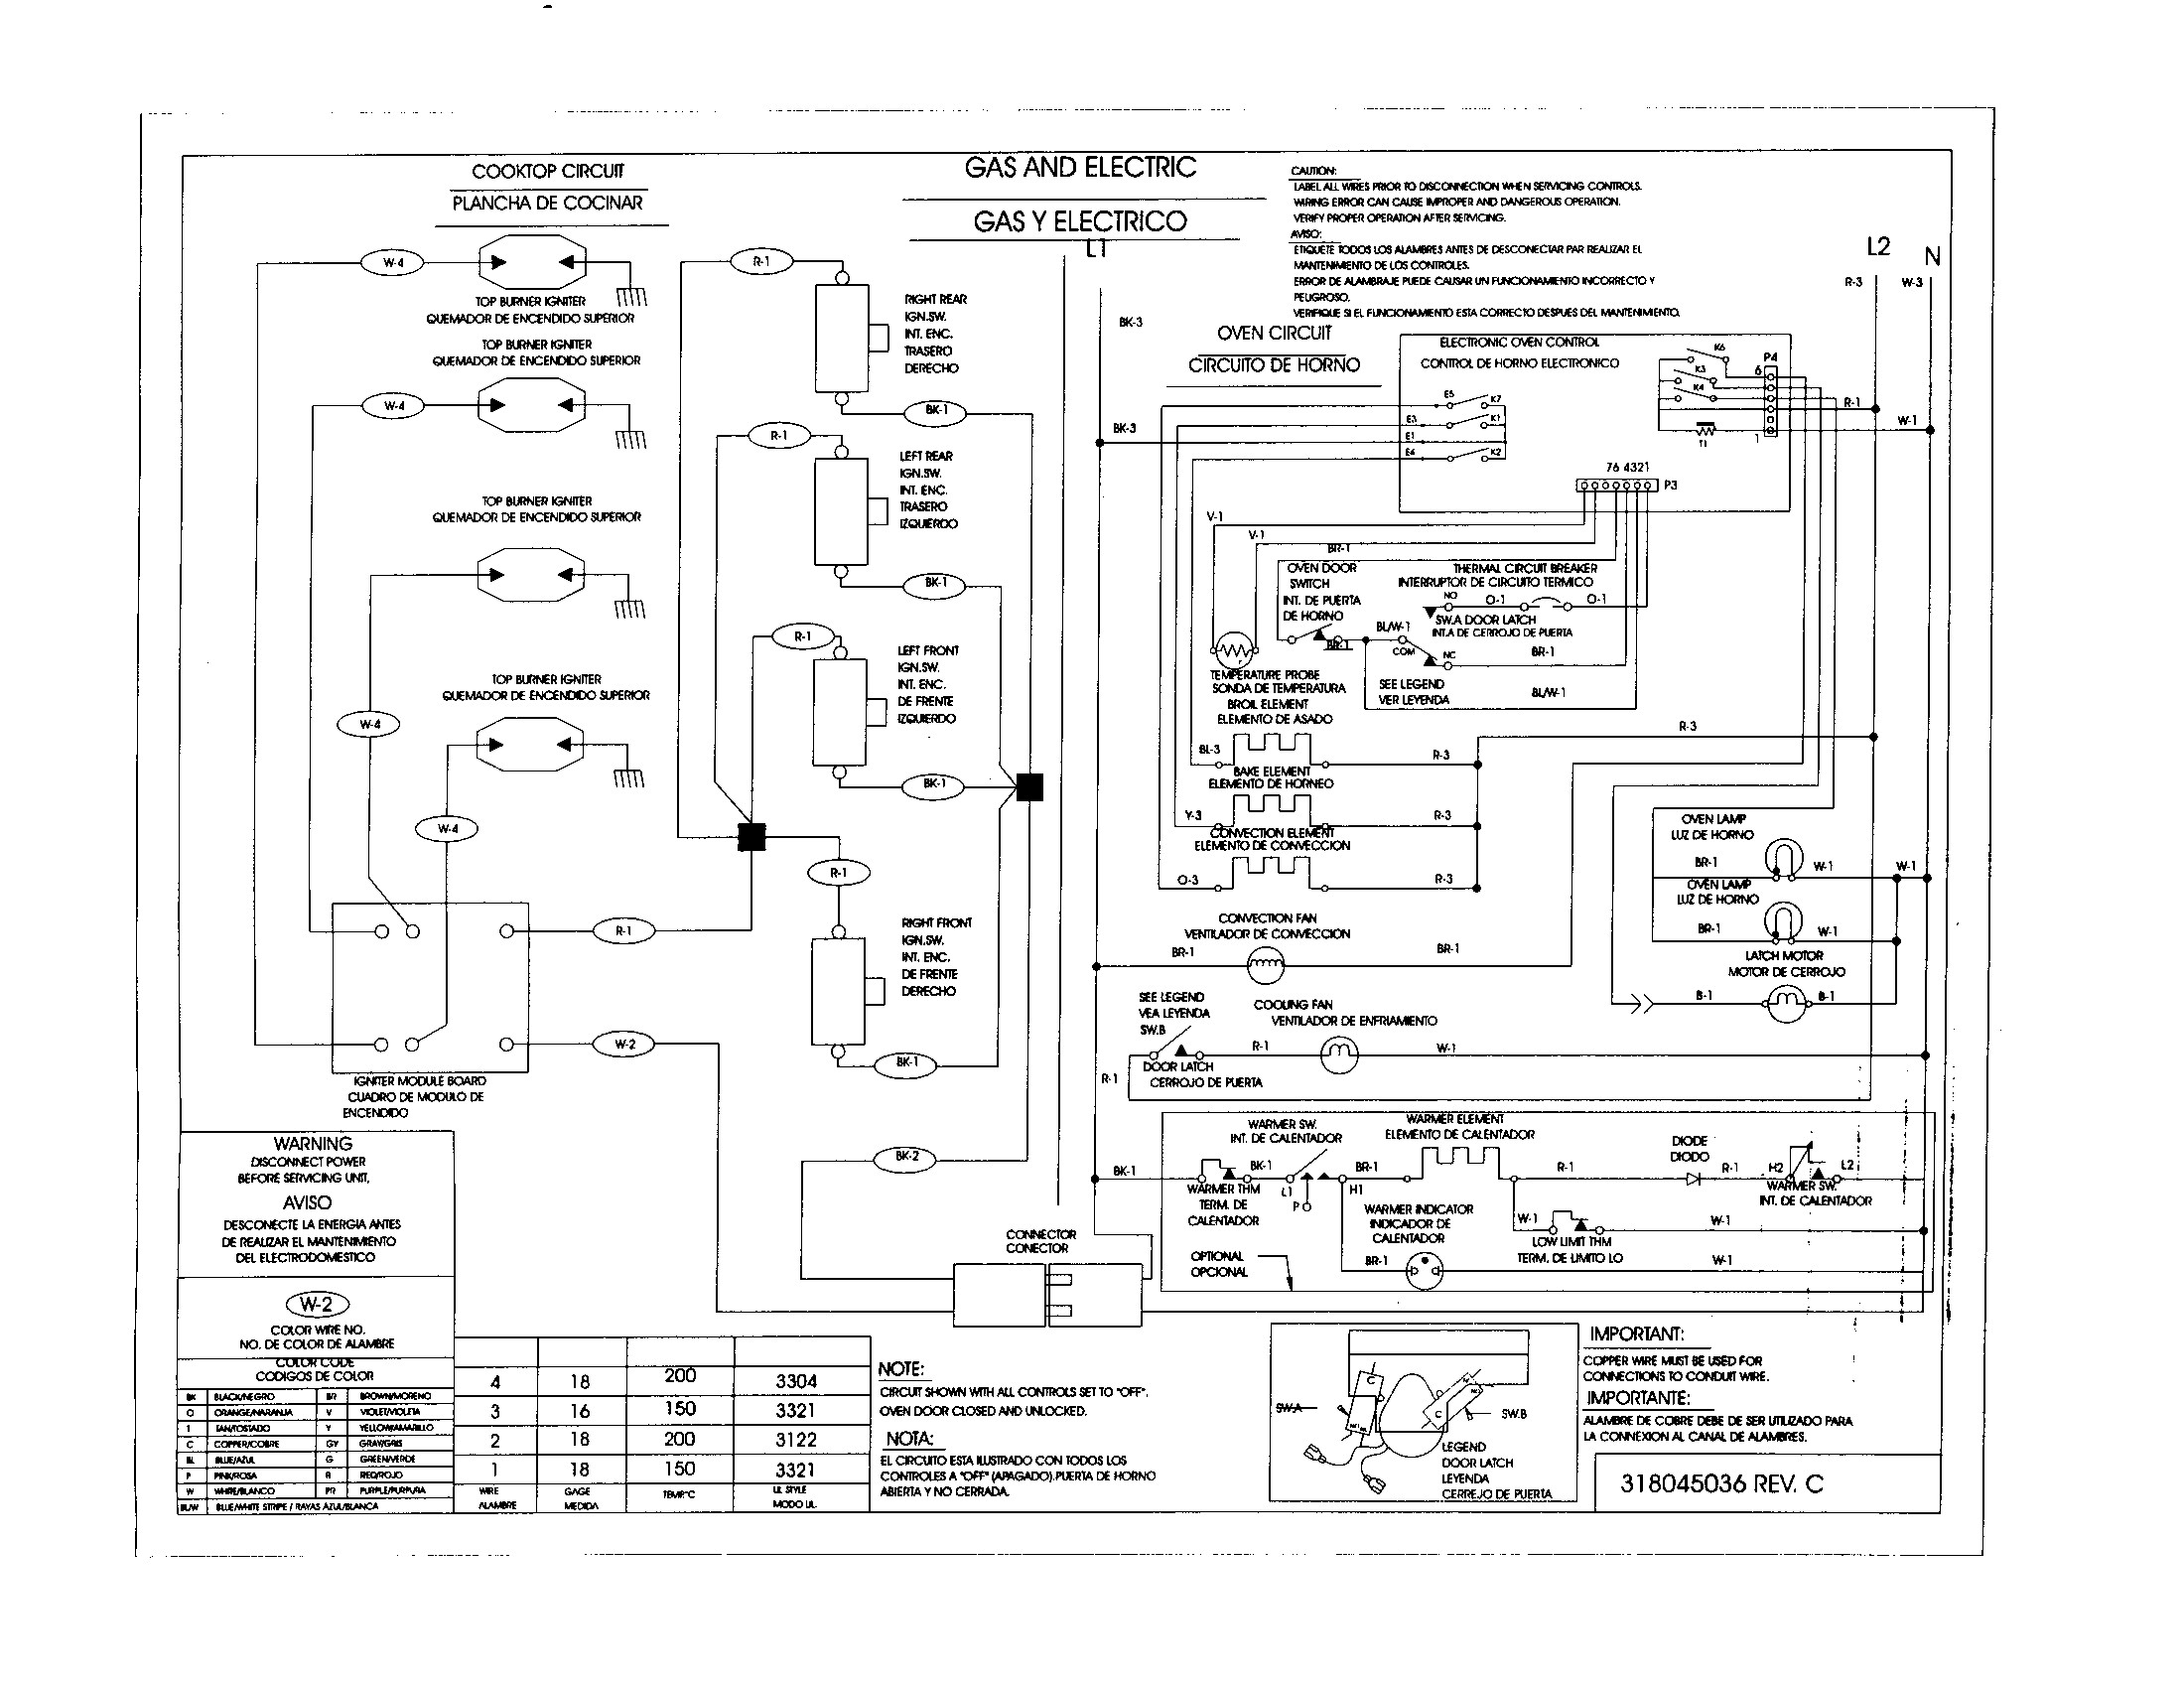 Whirlpool Oven Wiring Schematic Data Schema 2315544 Diagram Range Sf362lxsy0 Example Electrical Rh Olkha Co Control Board Rebuild Double Diagrams